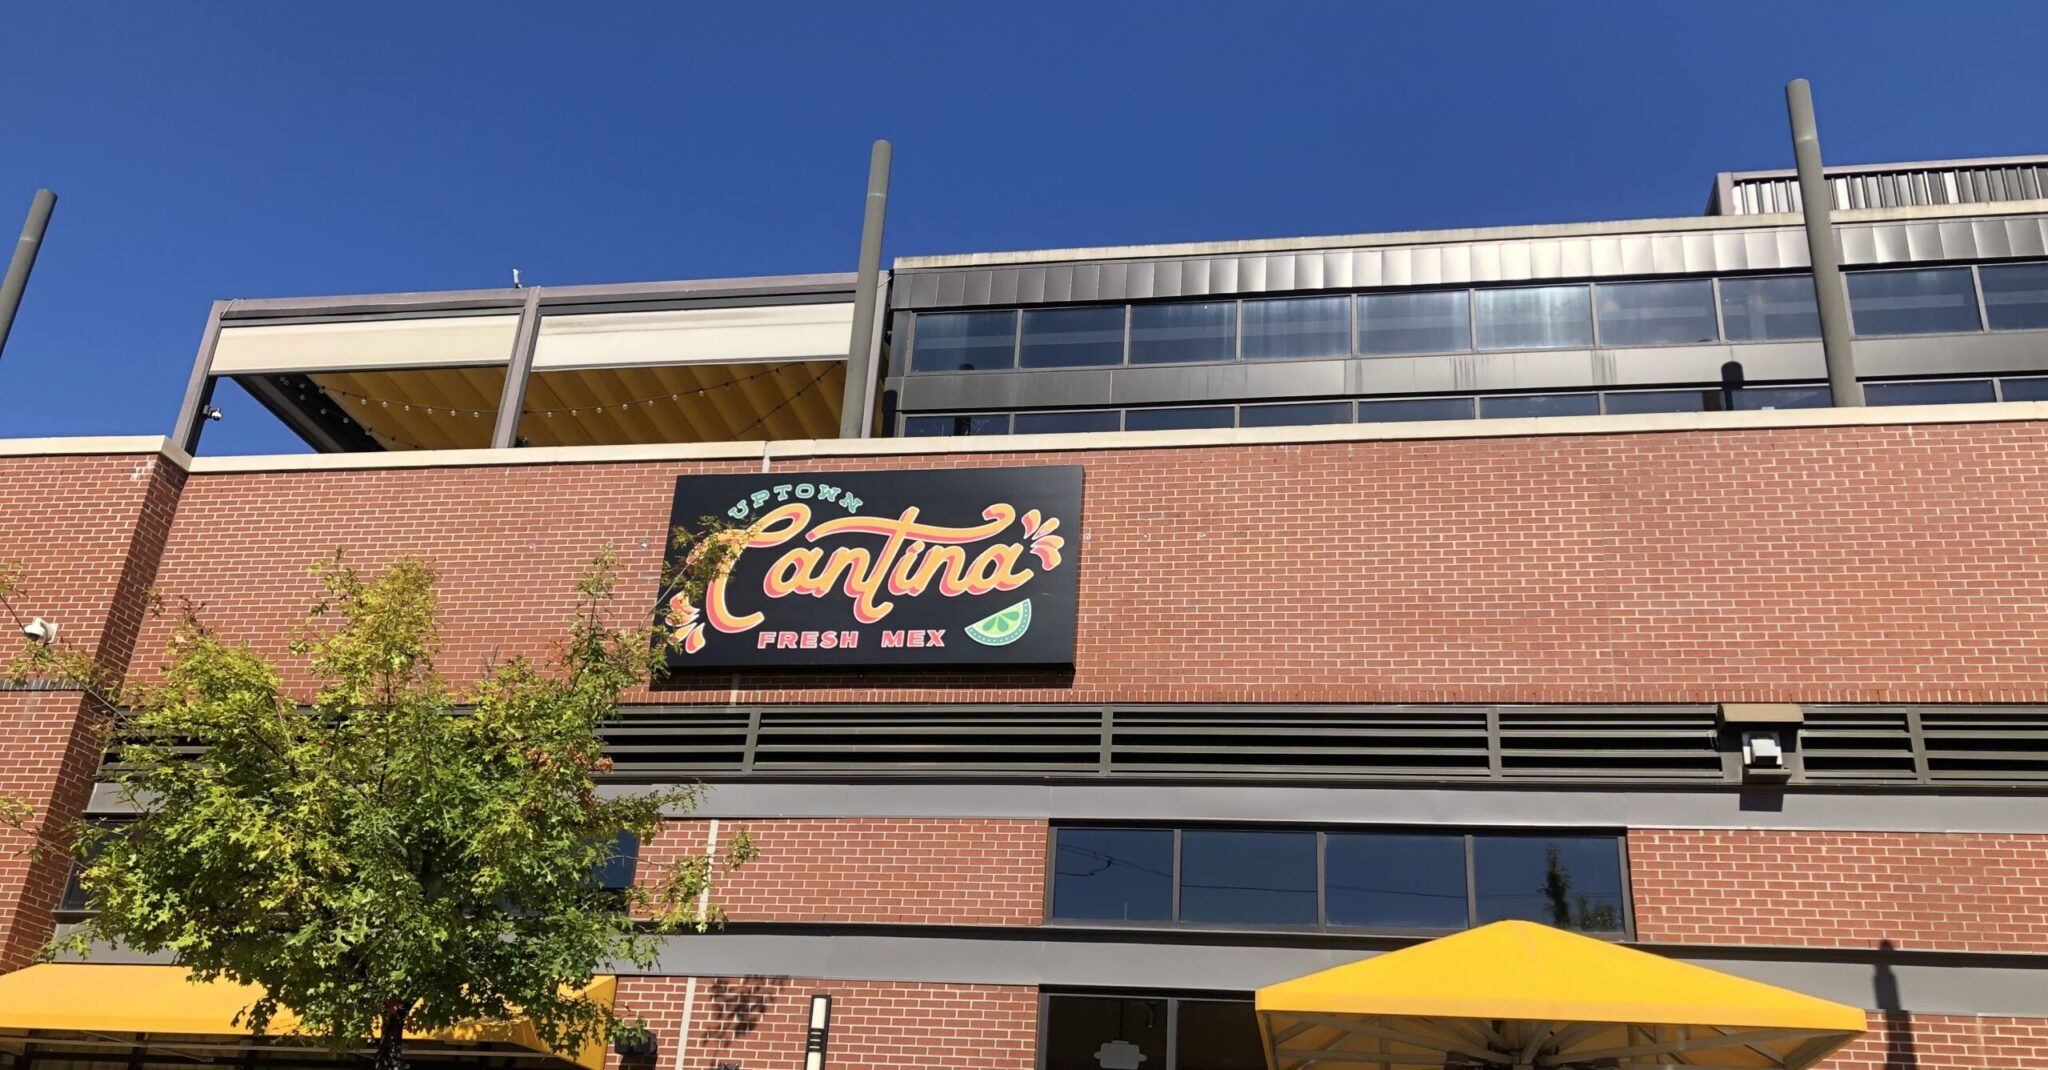 BOCCA, Uptown Cantina, Yo Chef Surf + Turf earn 95+ food service scores